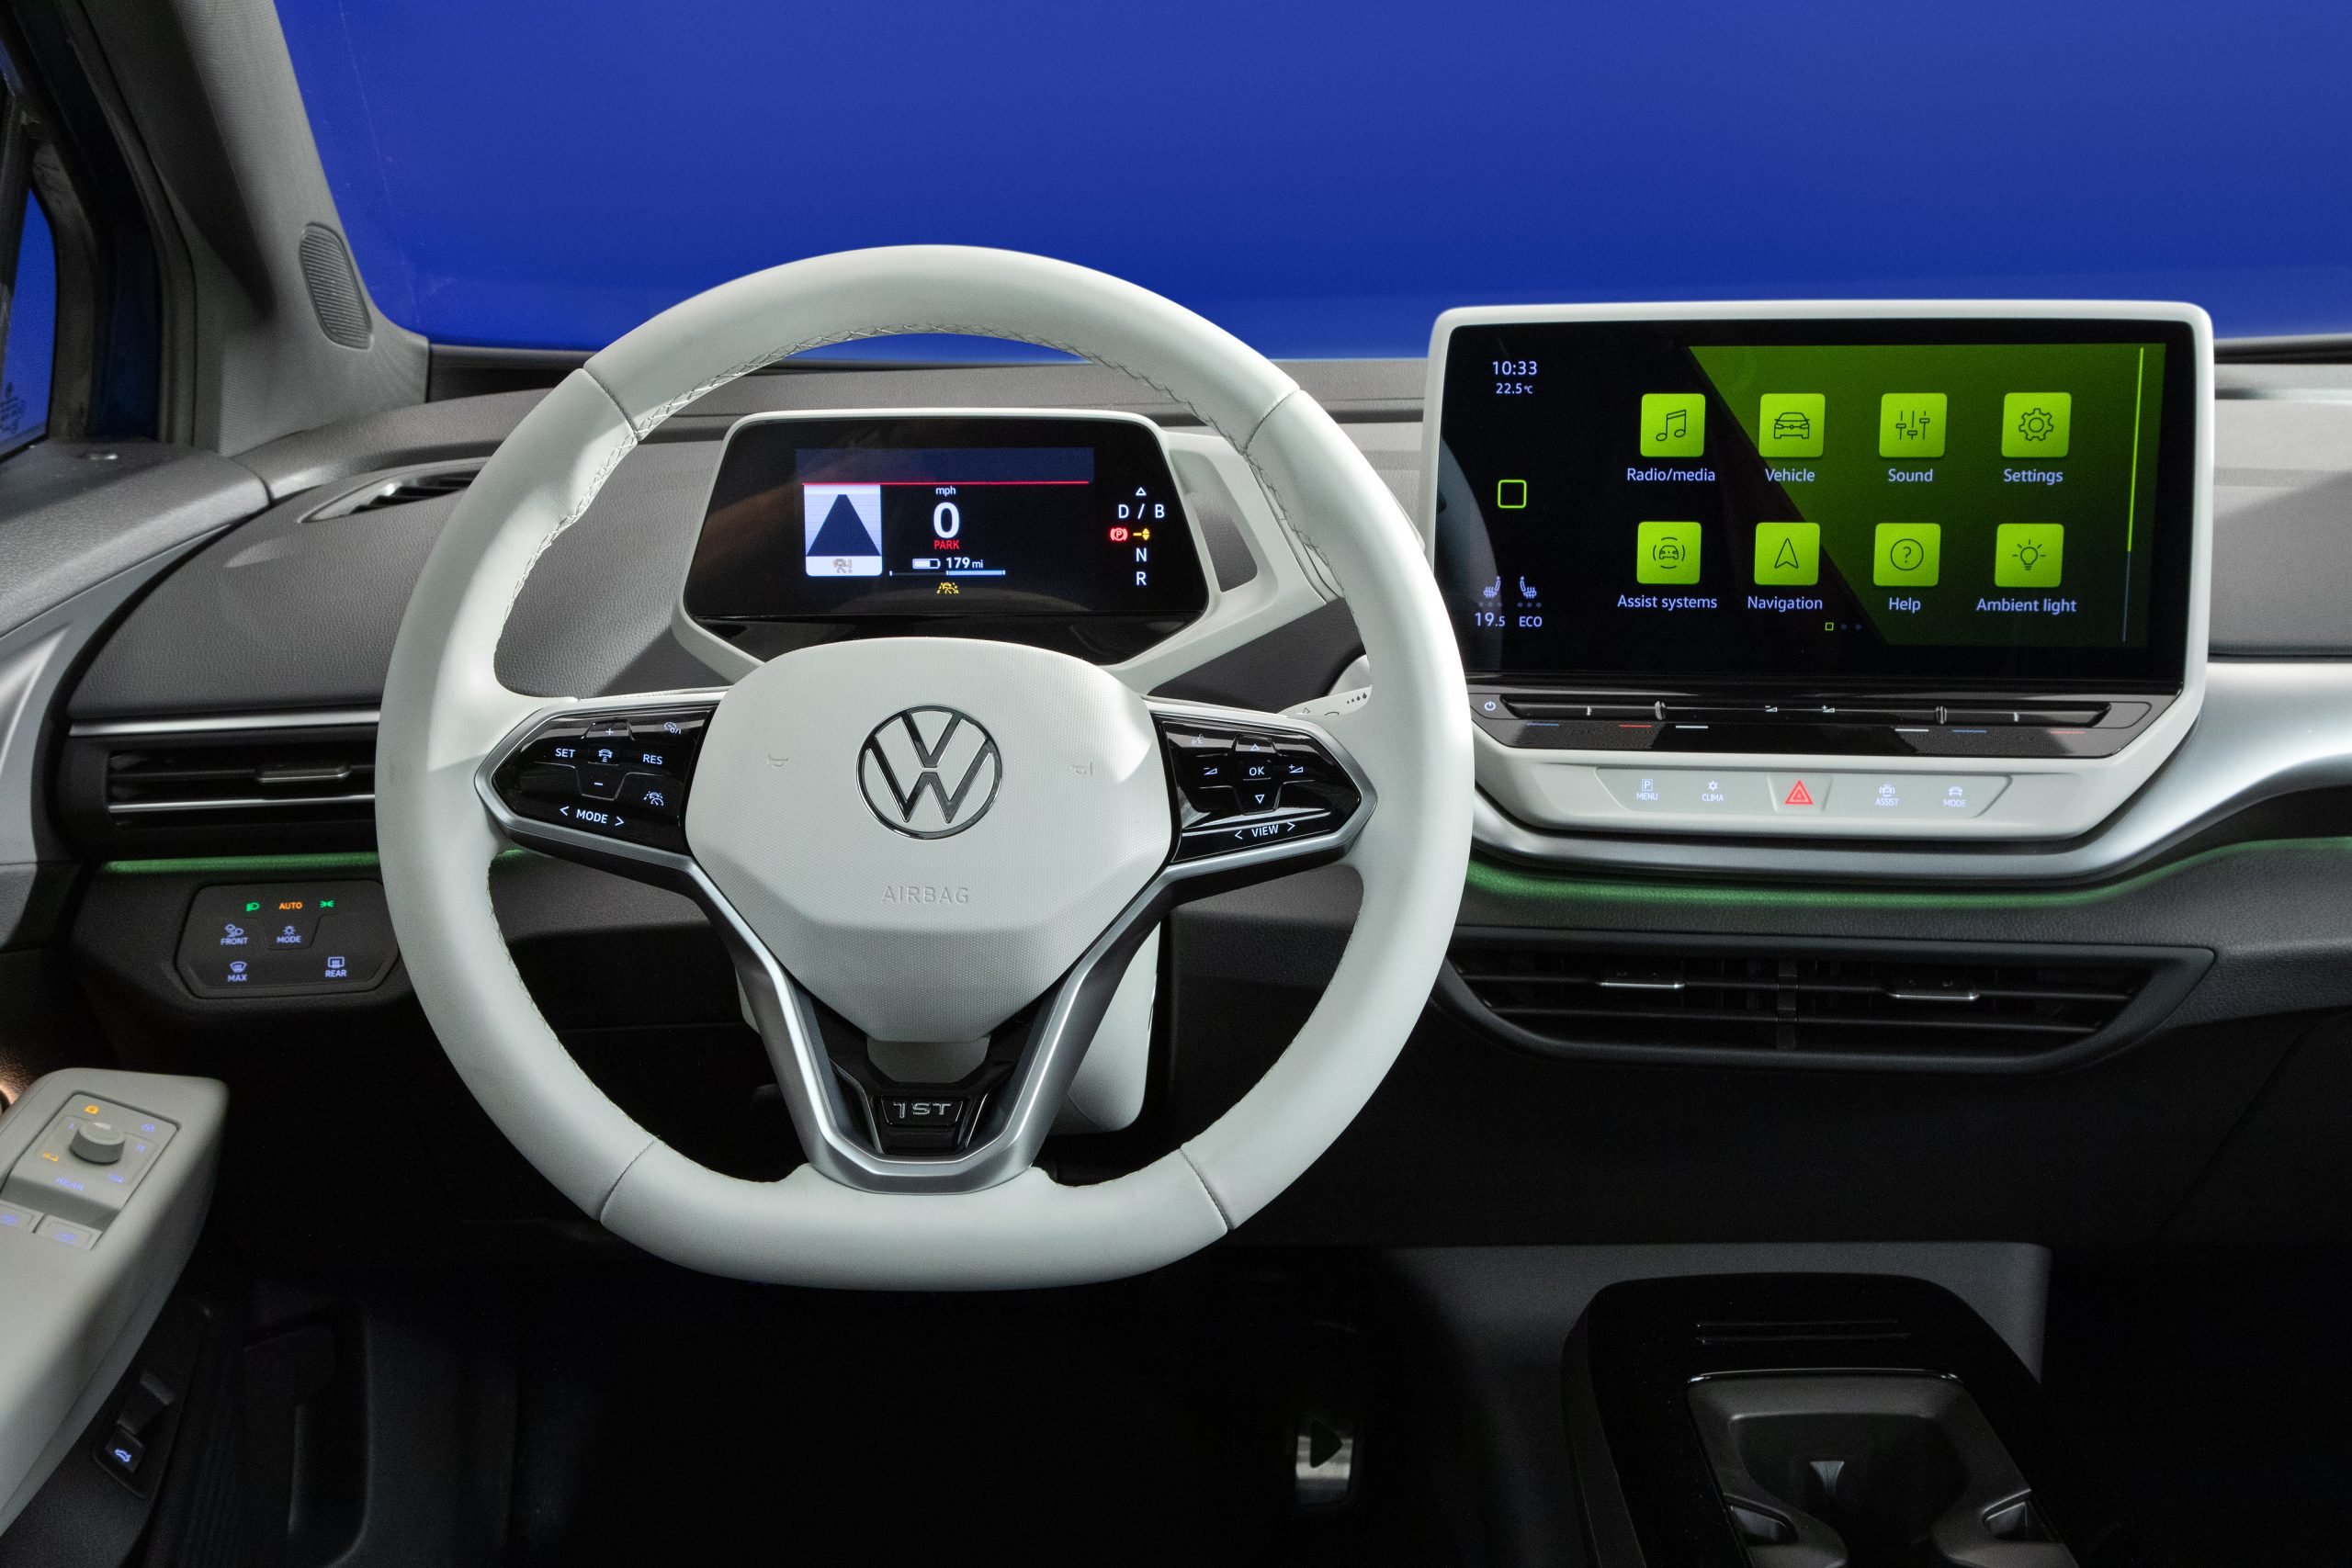 2021 VW ID.4 electric SUV dash touchscreen steering wheel